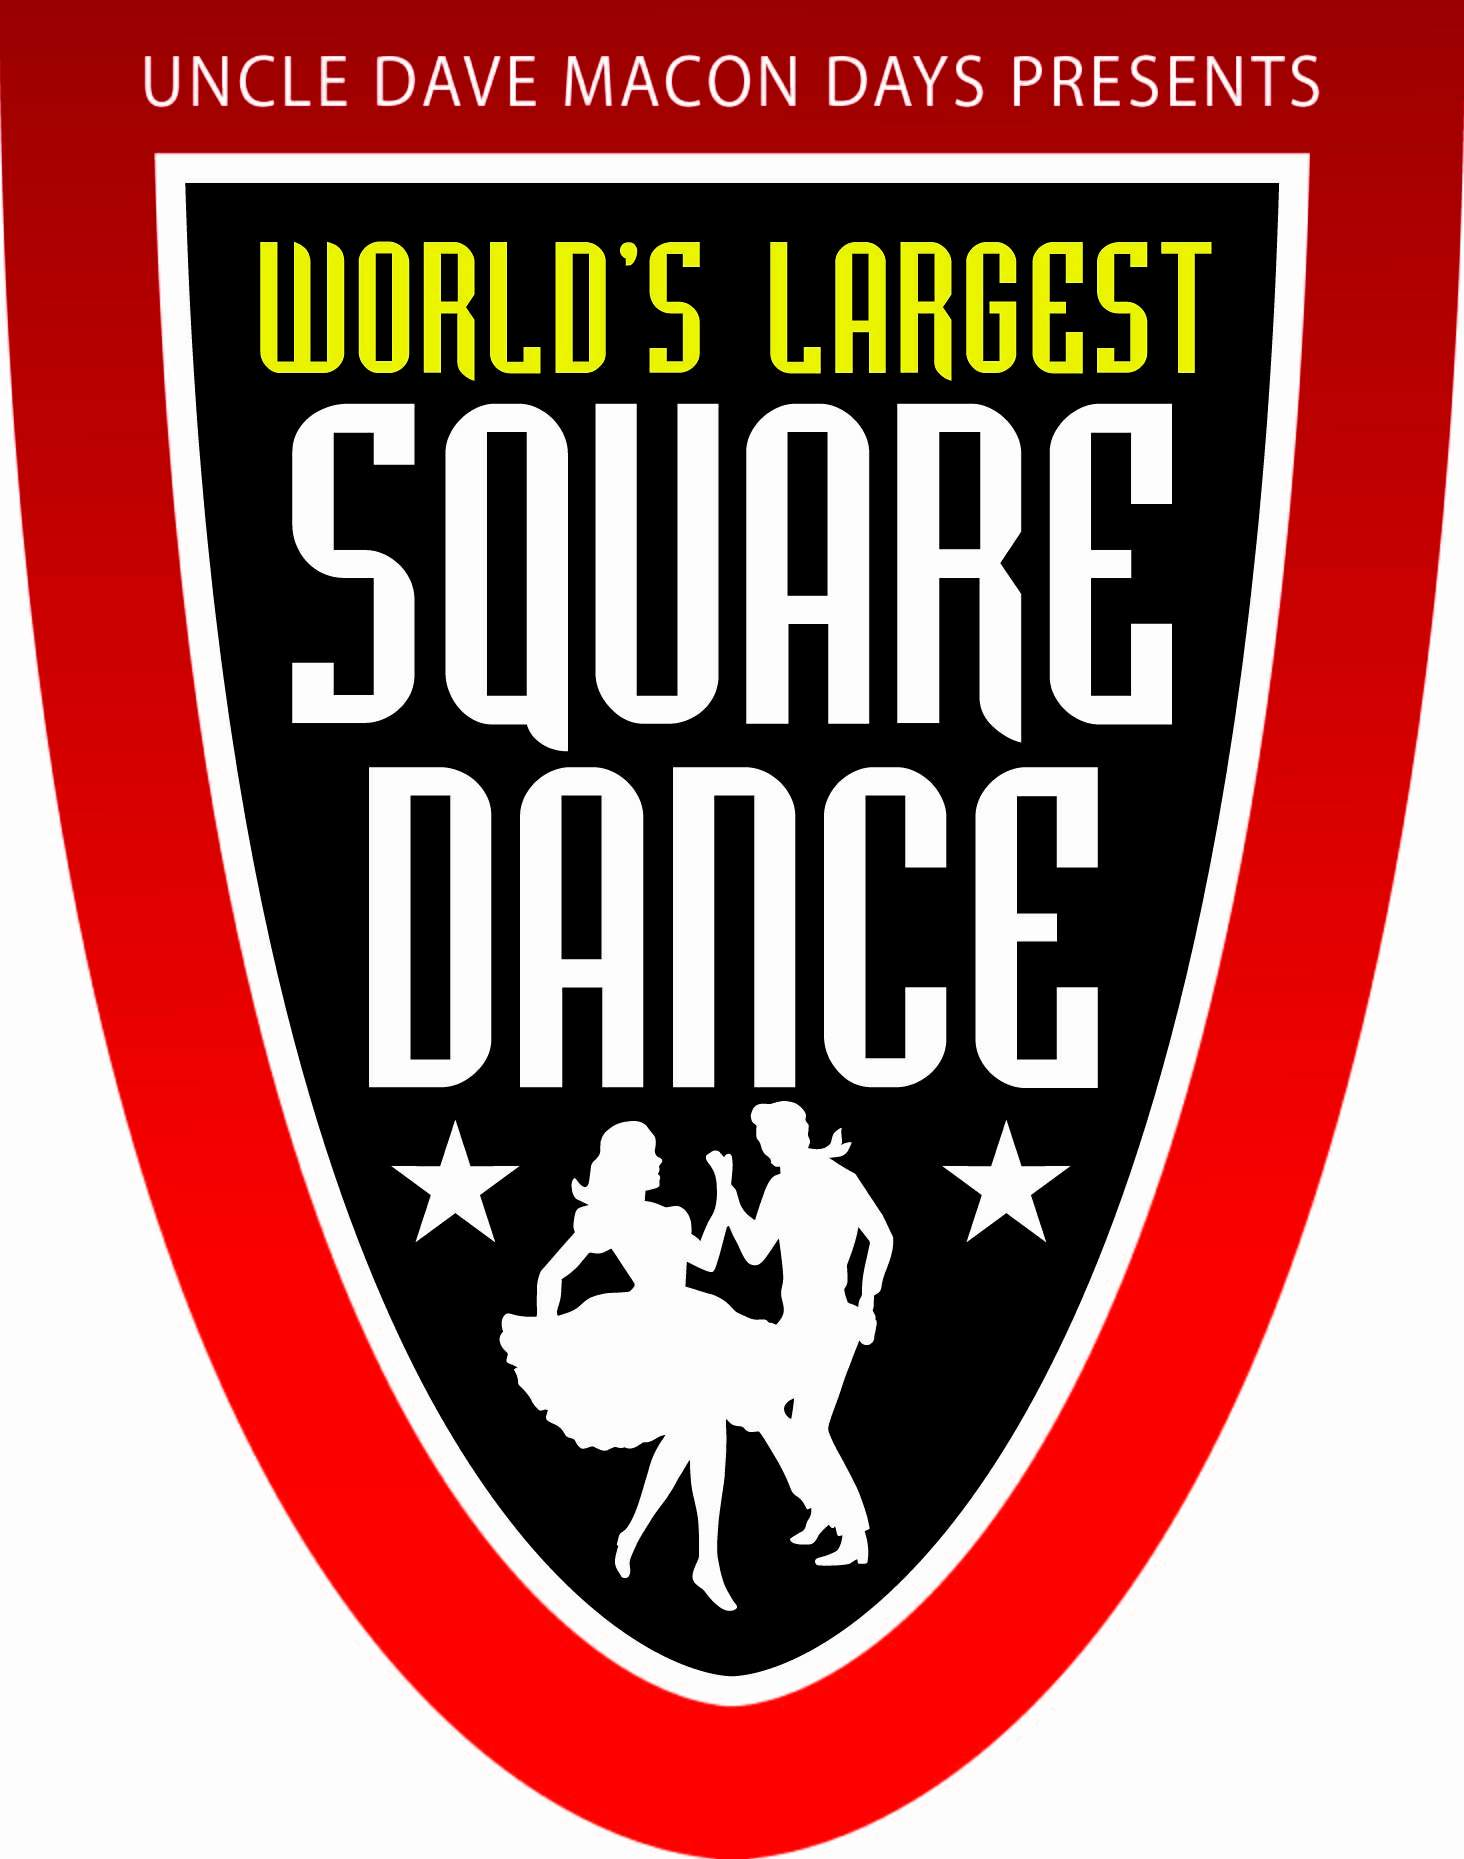 The Worlds Largest Square Dance to be held in Murfreesboro July 7th